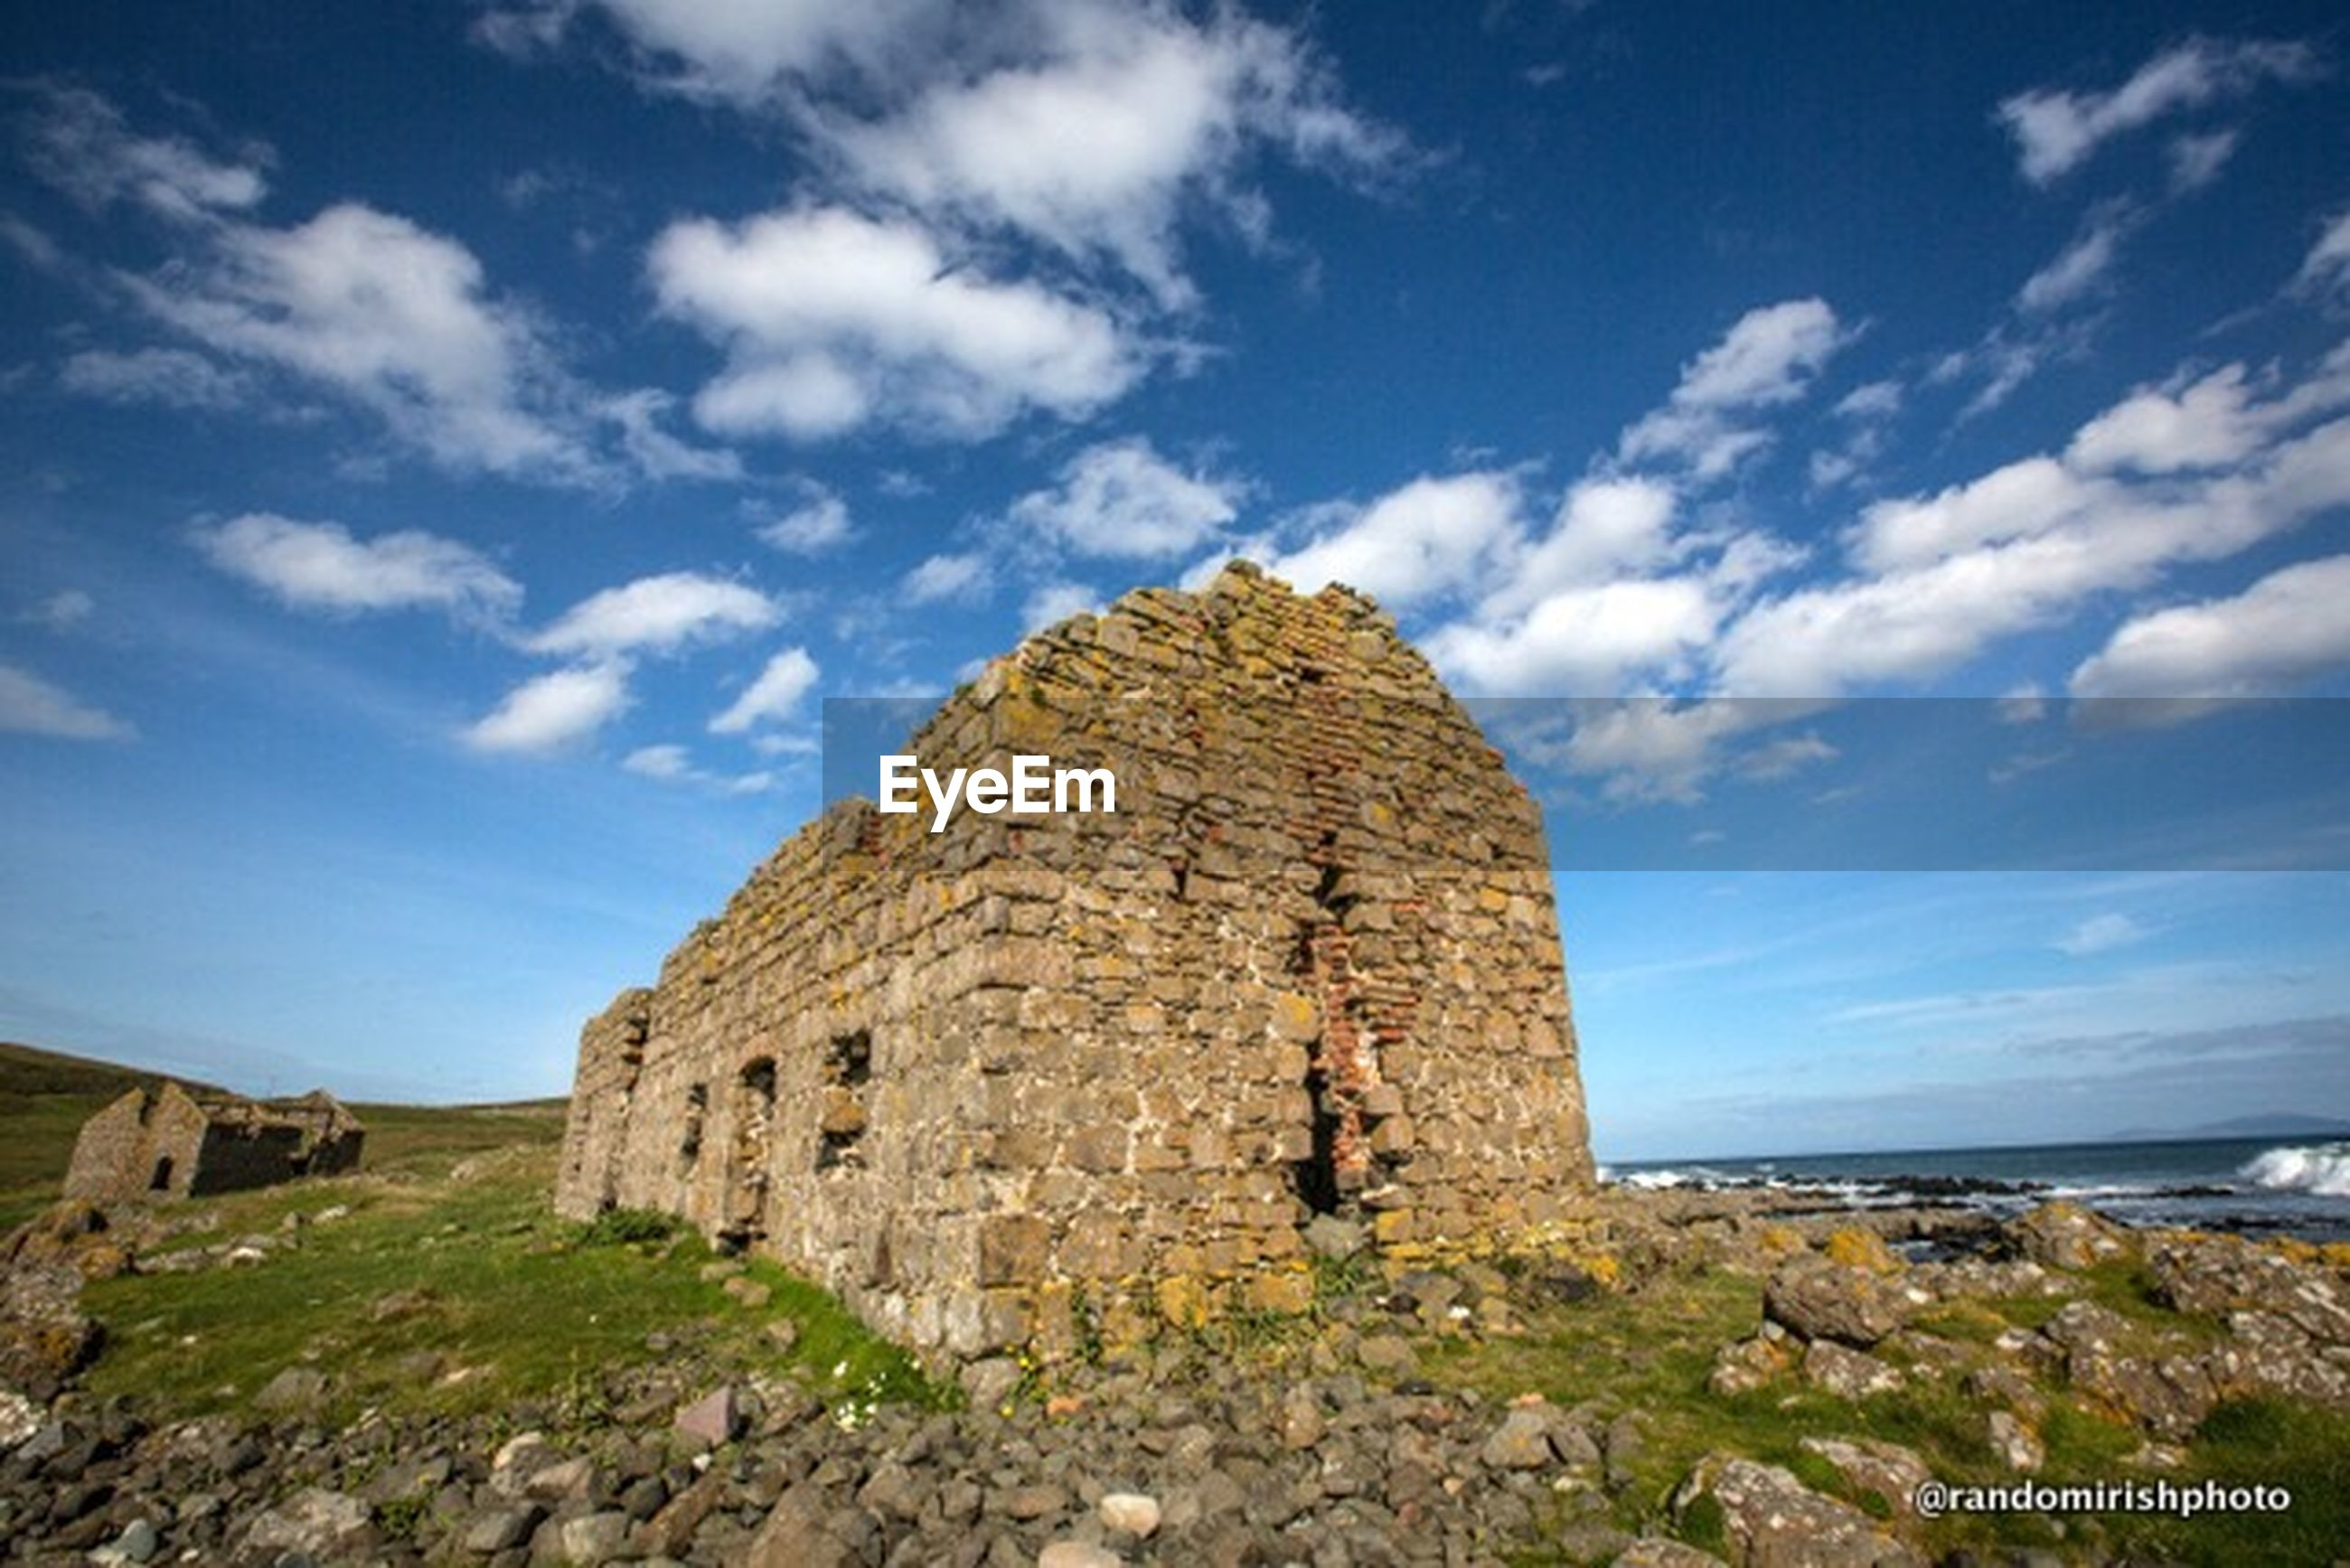 architecture, built structure, building exterior, sky, abandoned, old, damaged, cloud - sky, history, old ruin, sea, horizon over water, cloud, the past, blue, run-down, deterioration, day, obsolete, castle